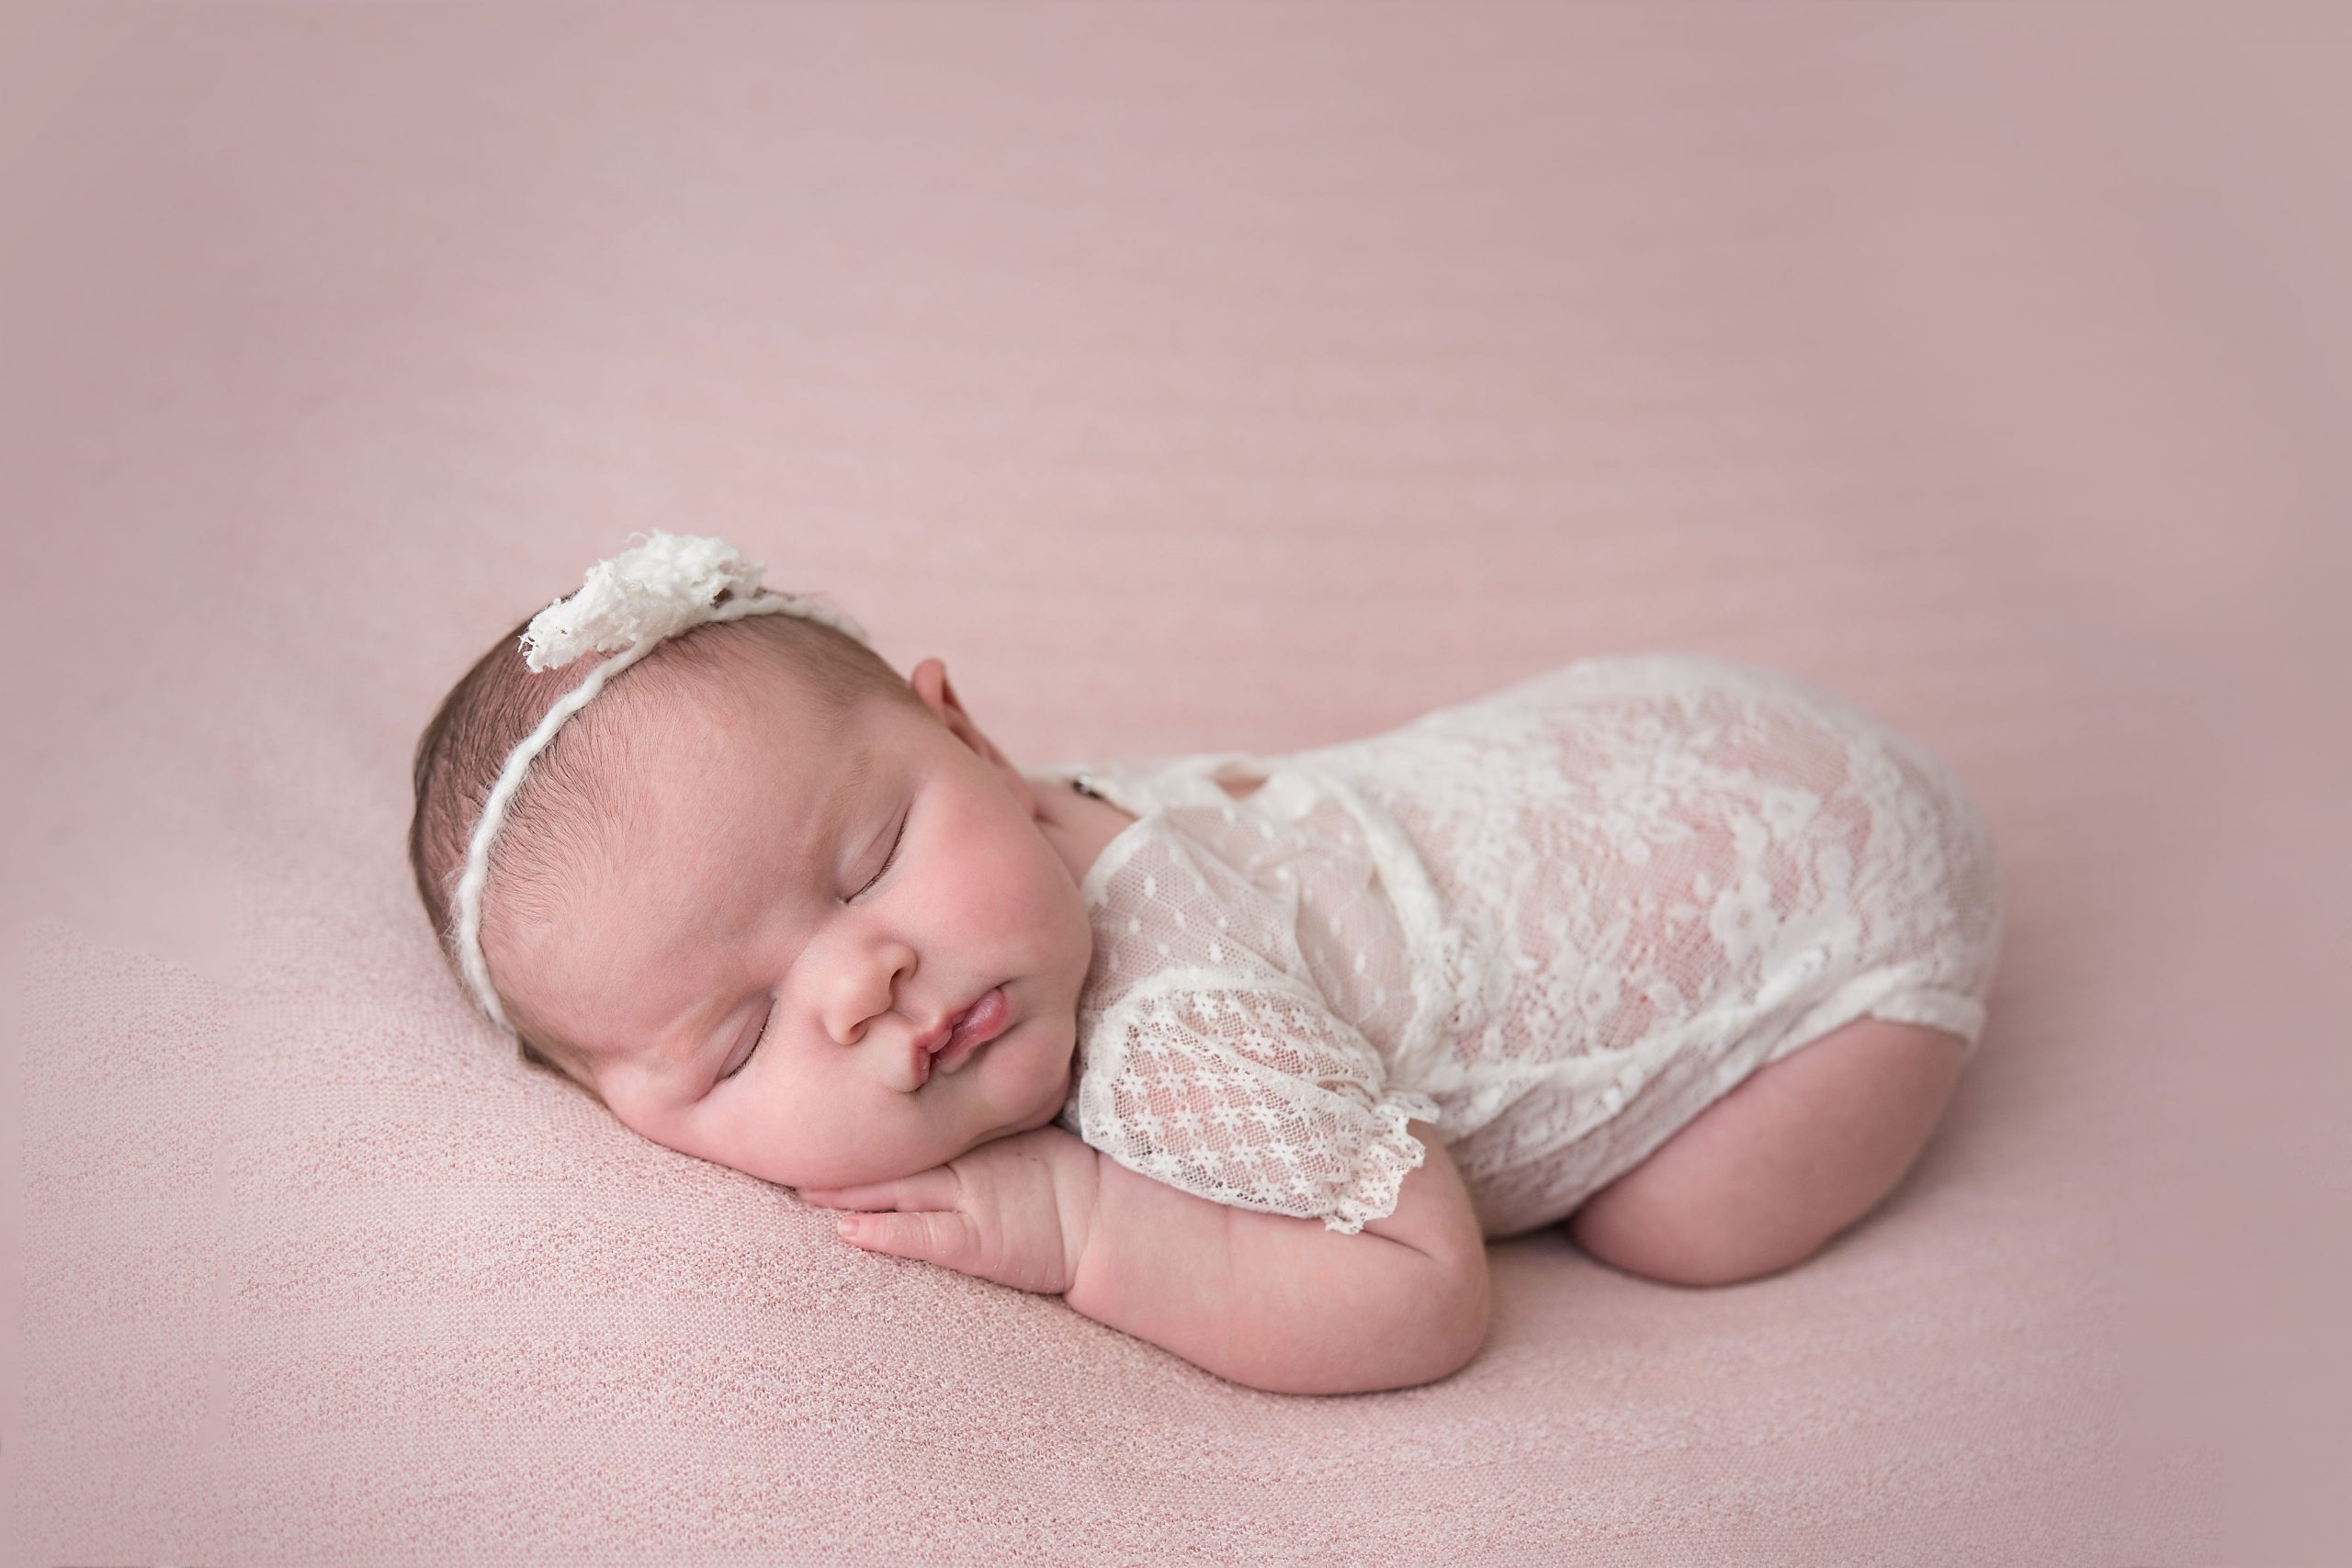 Benefits of the Newborn Photography